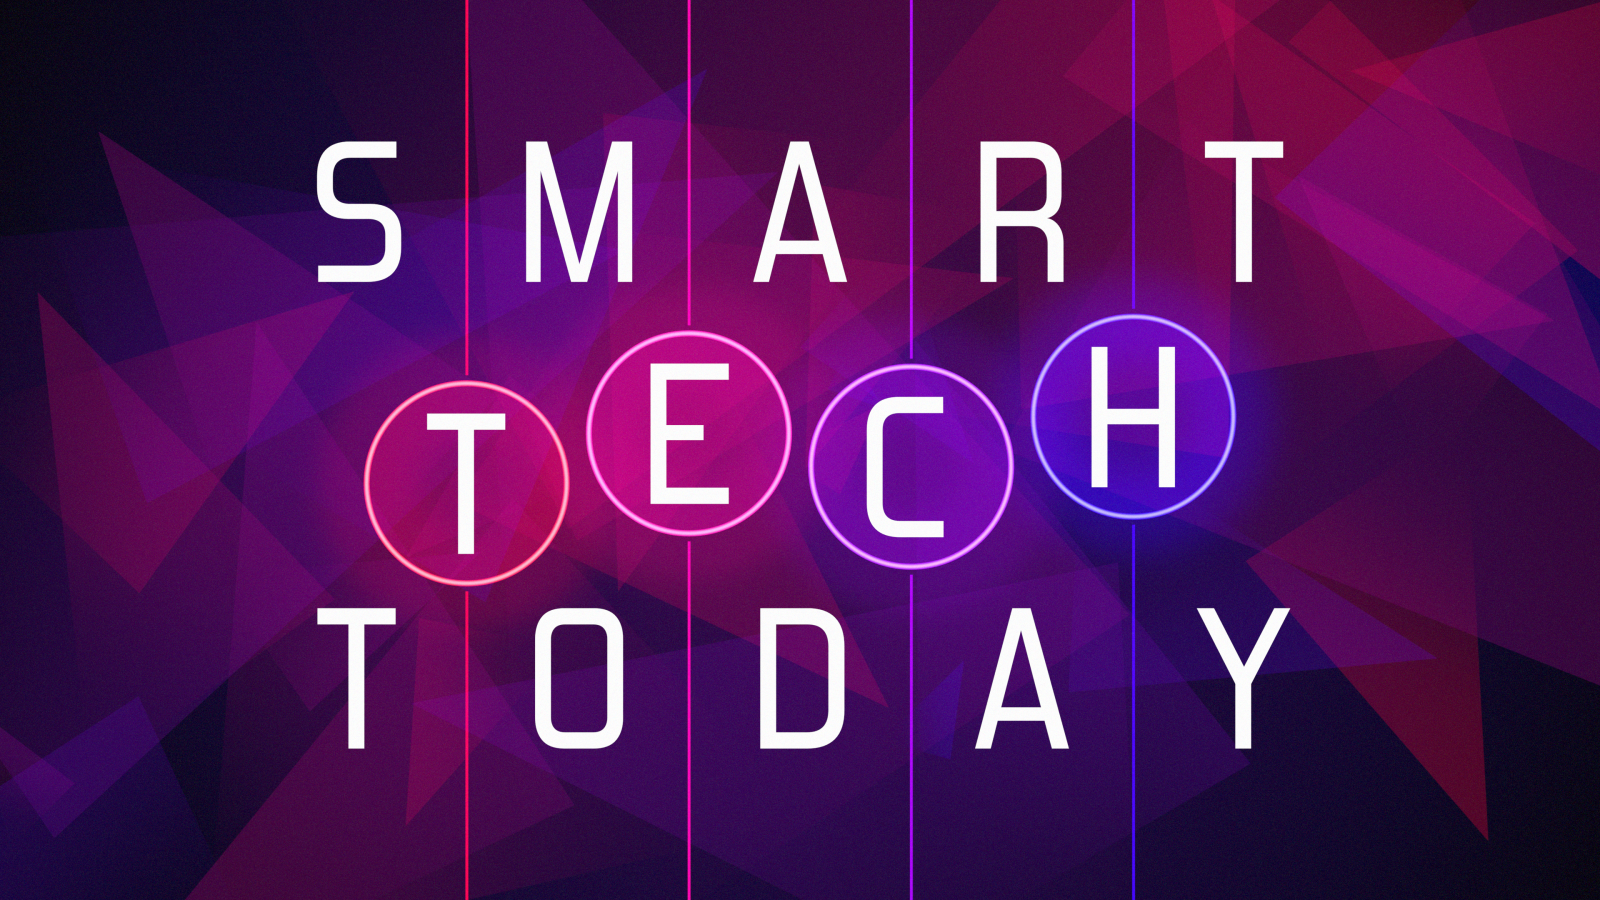 Smart Tech Today 2 Mesh WiFi and Voice-First Computing | TWiT.TV